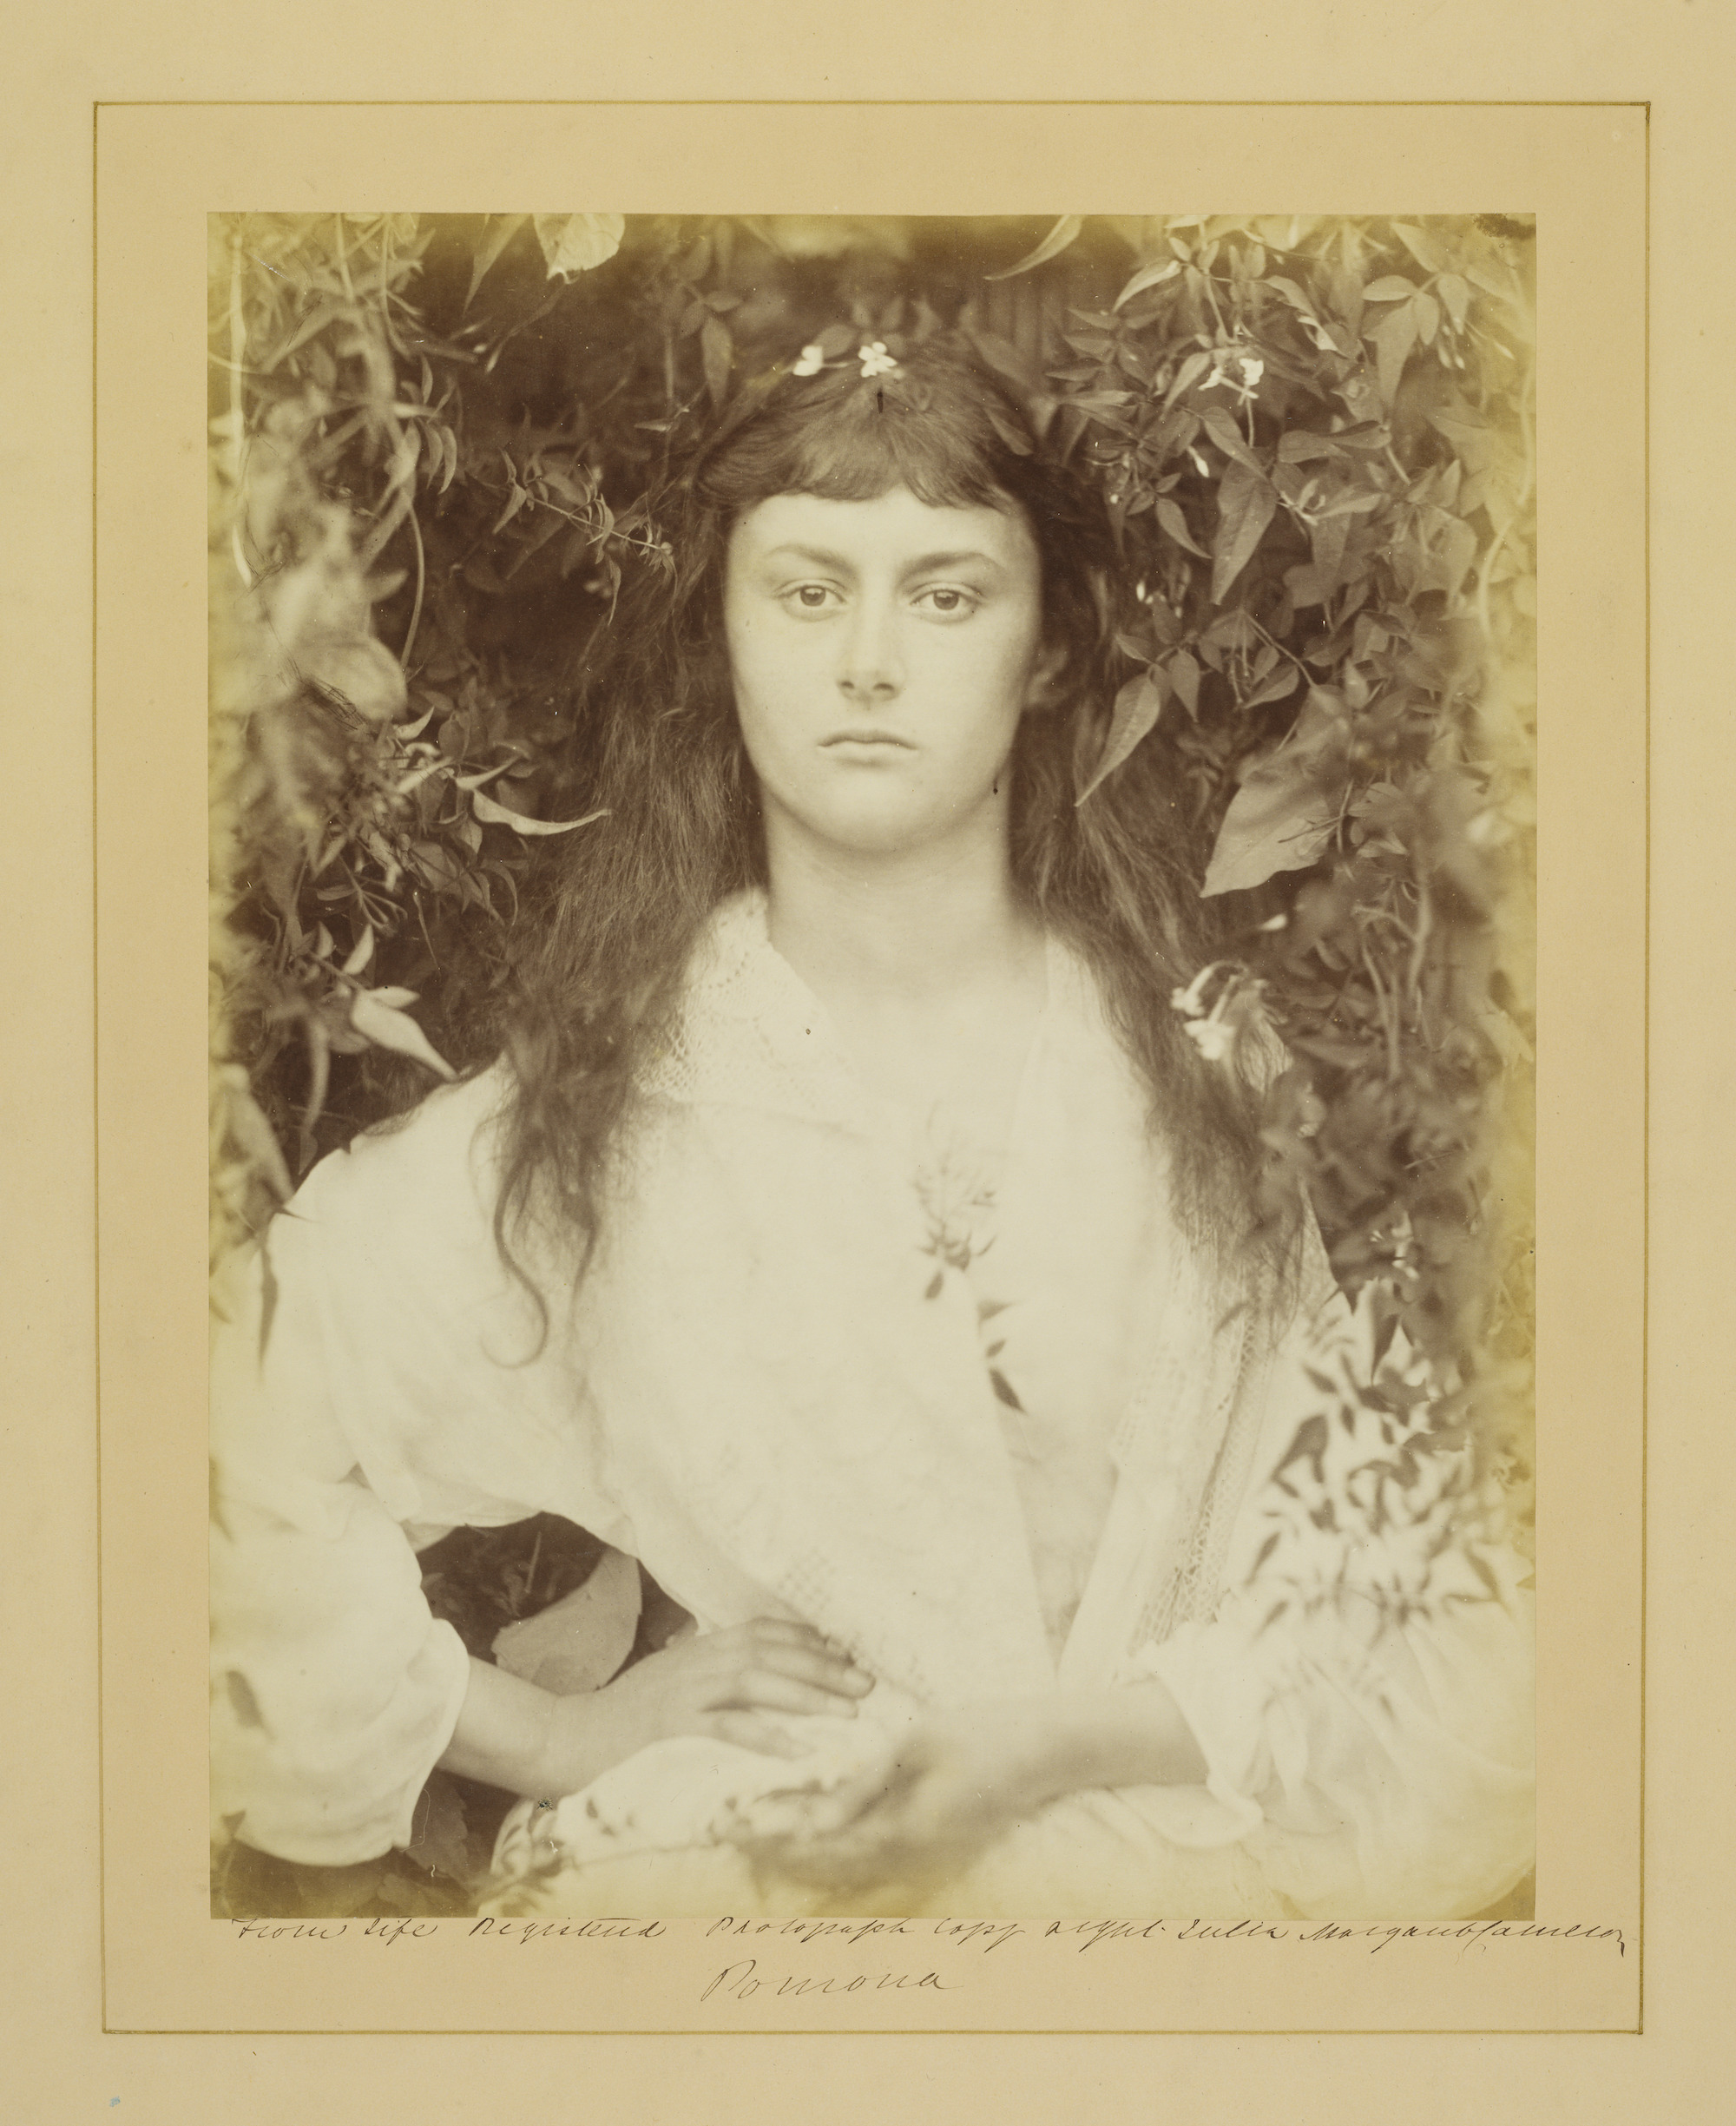 Photograph of the 'real' Alice Liddell, by Julia Margaret Cameron, 'Pomona', albumen print, 1872 © Victoria and Albert Museum, London